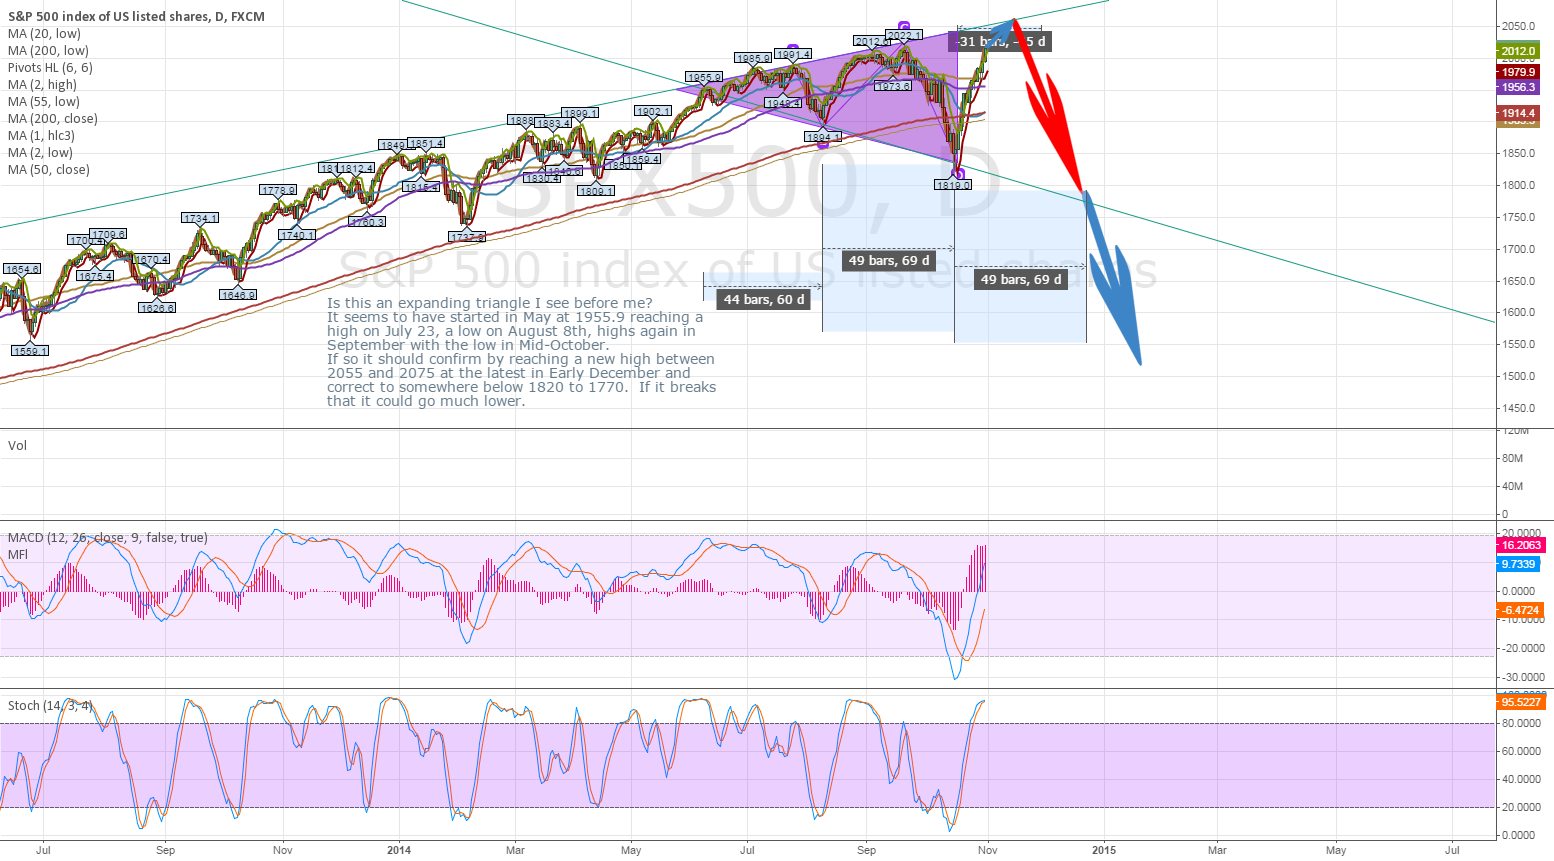 S&P 500 - Expanding Triangle to Close Out the Year